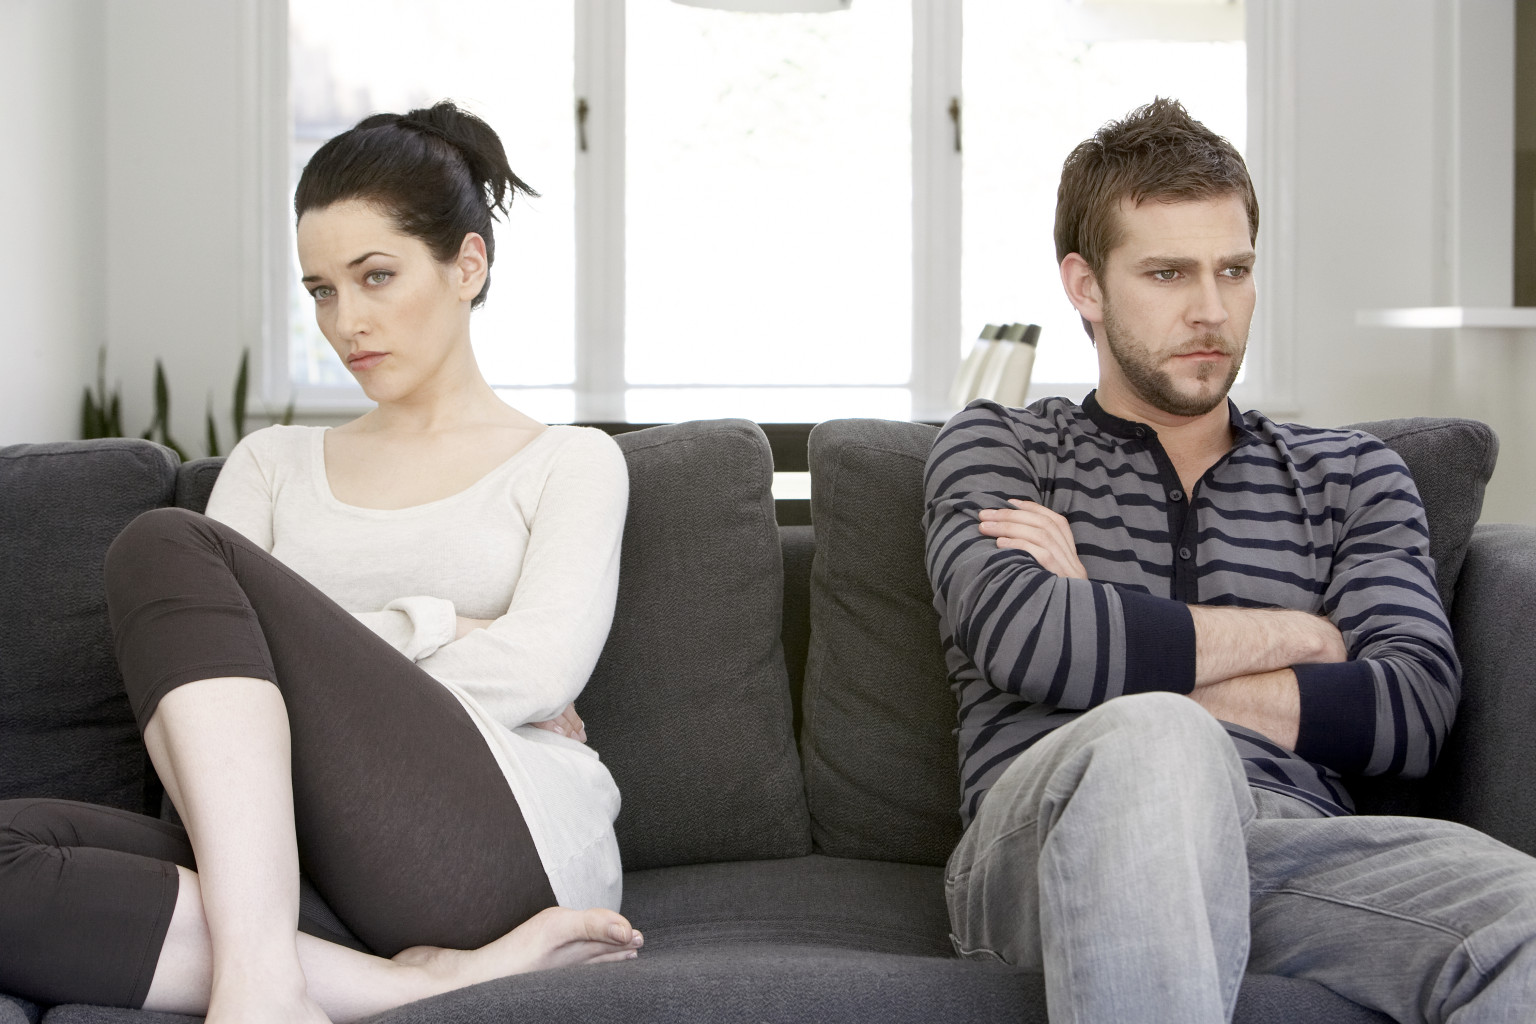 tips on how to identify unhealthy relationships